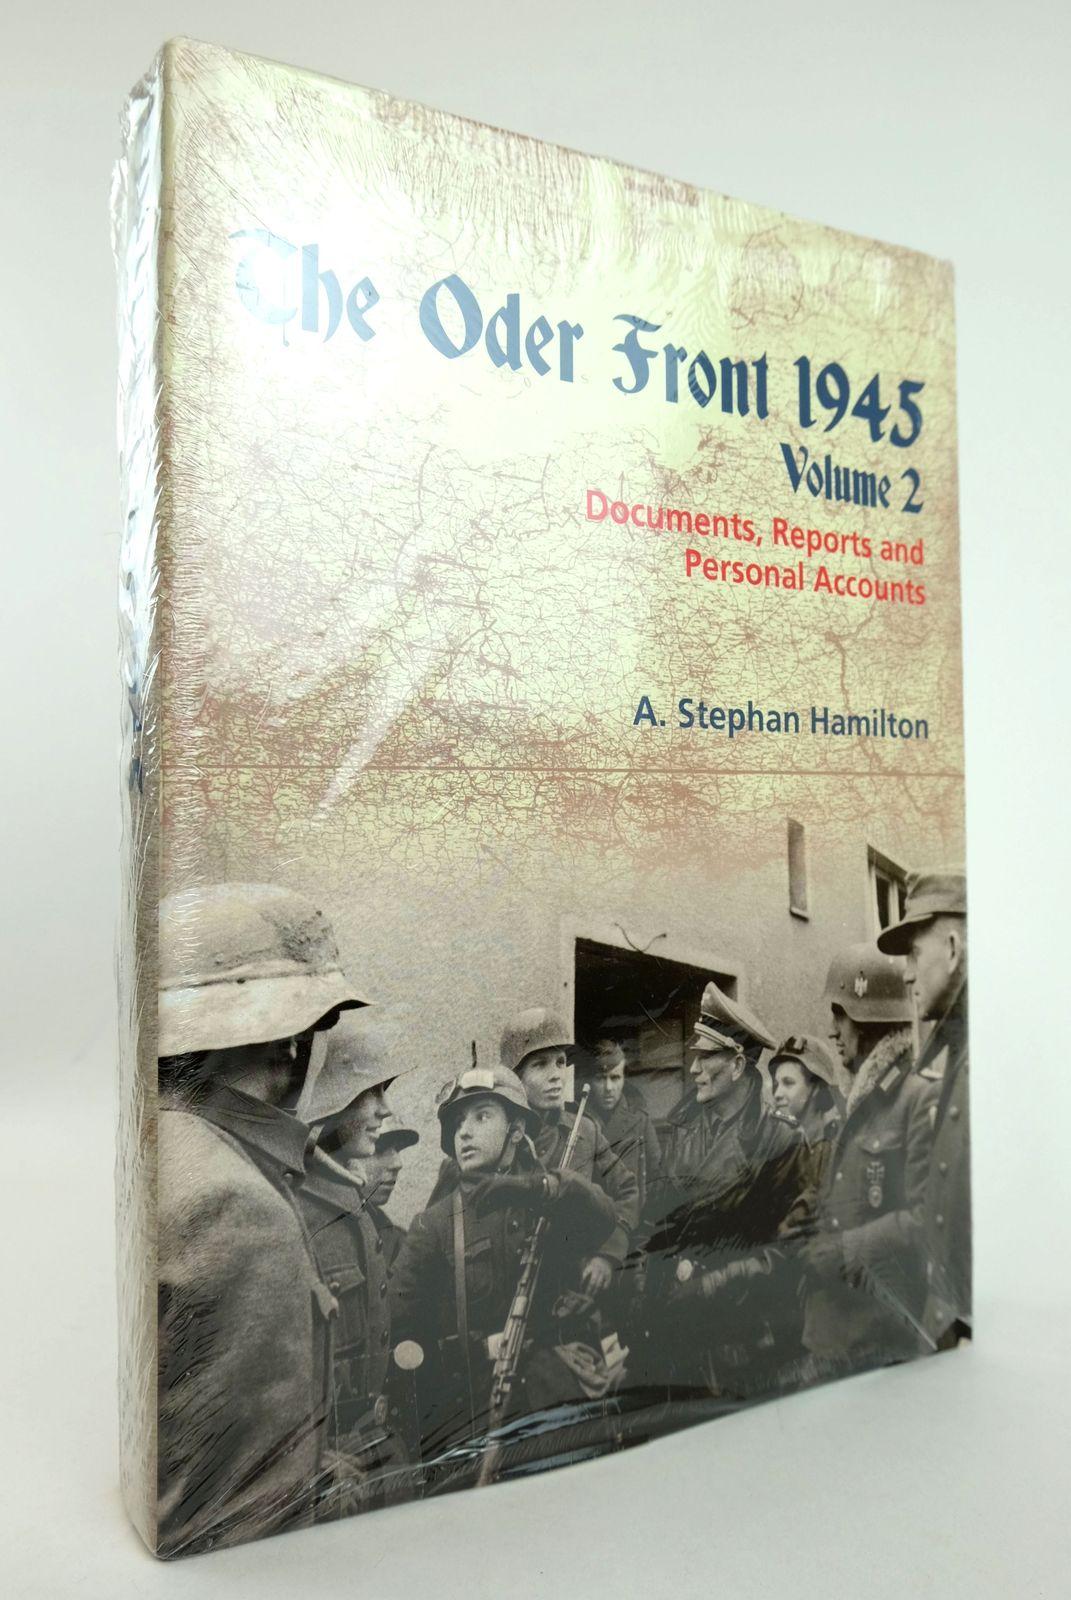 Photo of THE ODER FRONT 1945 VOLUME 2: DOCUMENTS, REPORTS AND PERSONAL ACCOUNTS written by Hamilton, A. Stephan published by Helion & Company (STOCK CODE: 1818909)  for sale by Stella & Rose's Books